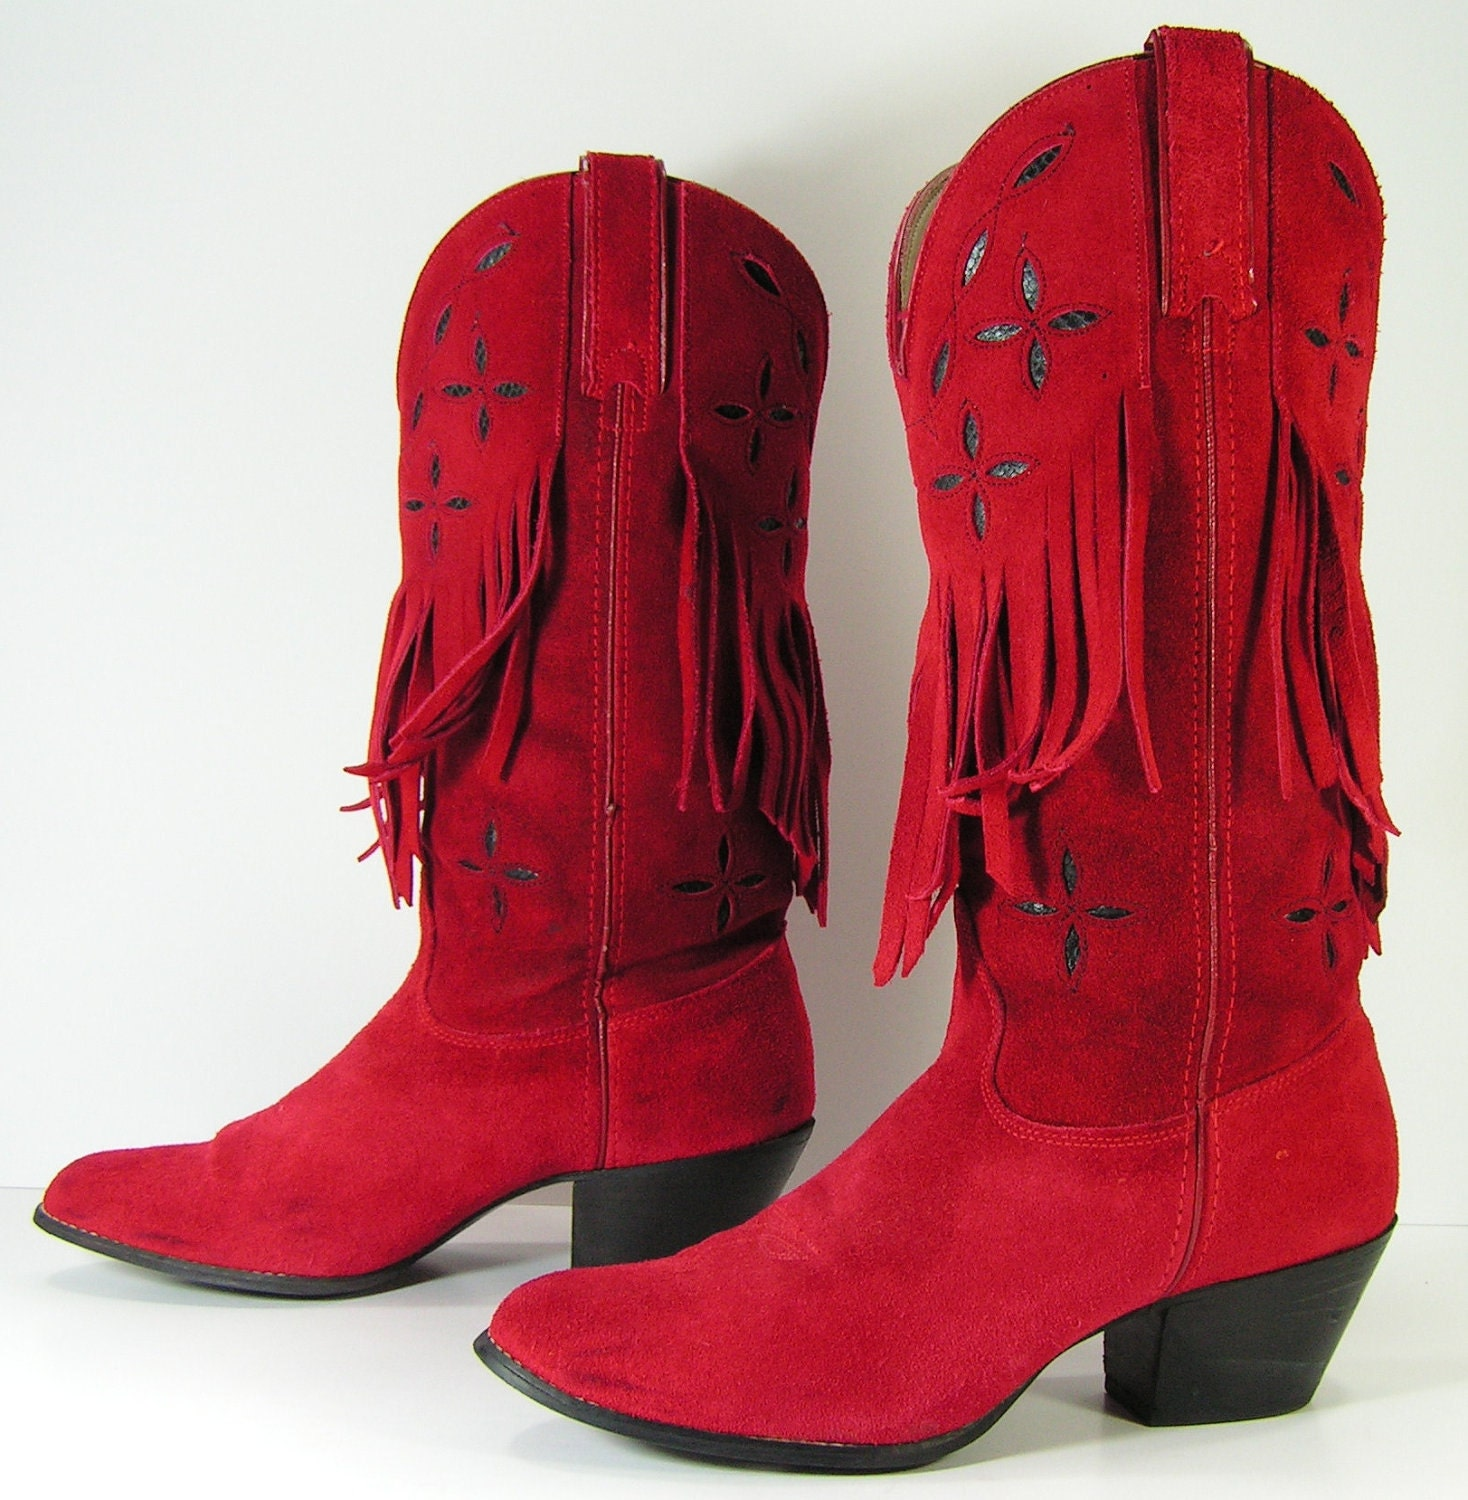 red cowboy boots womens 8 B tassels suede leather fringe